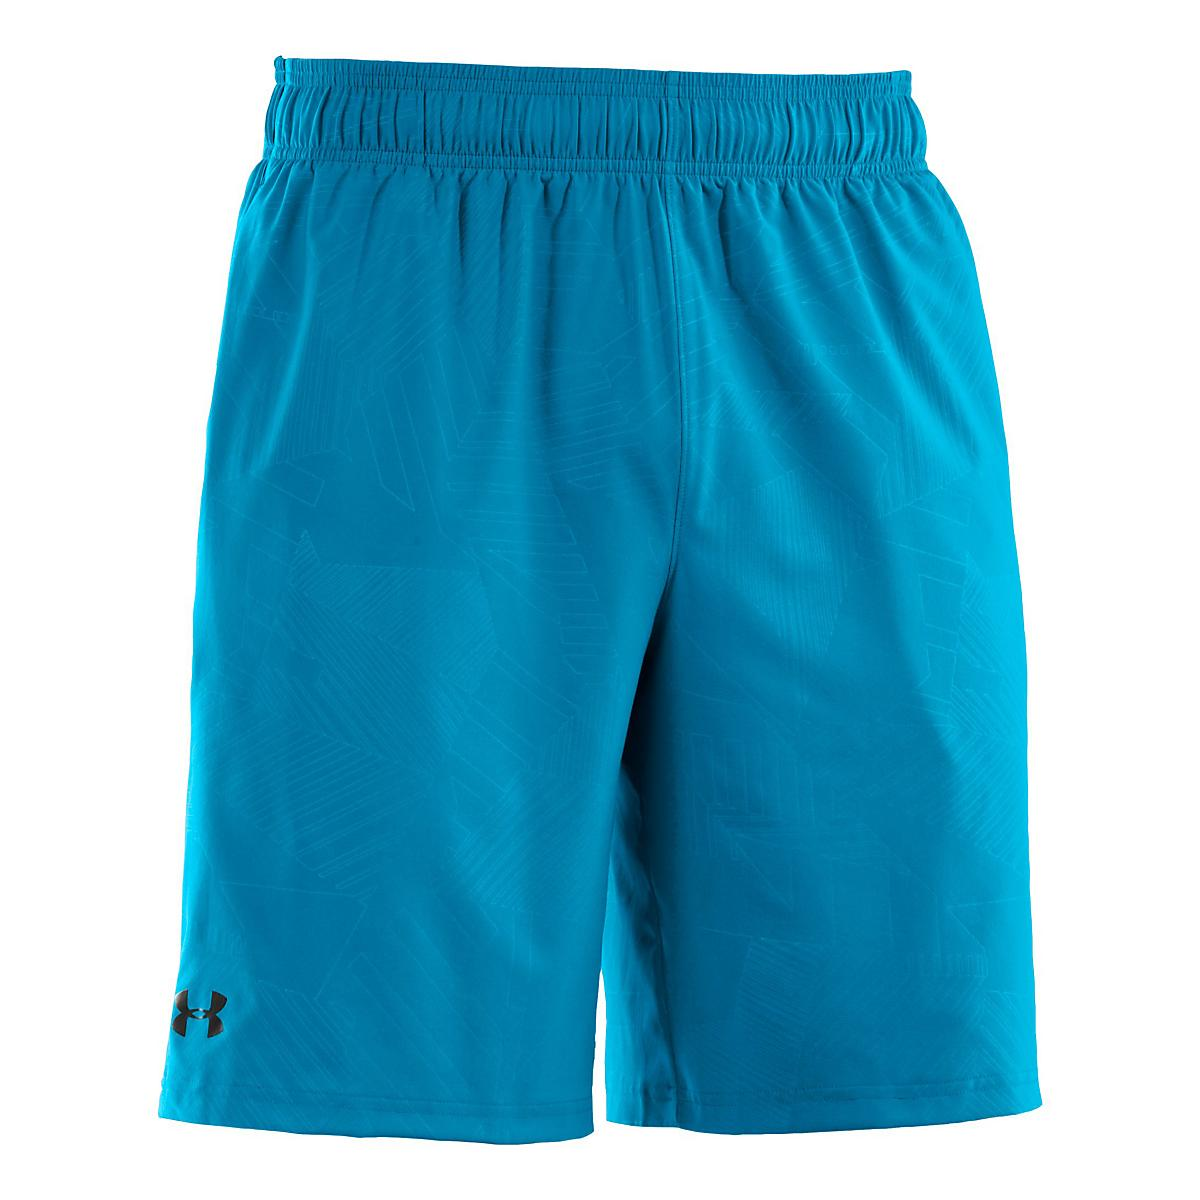 Men's Under Armour�HeatGear Mirage Print Short 10